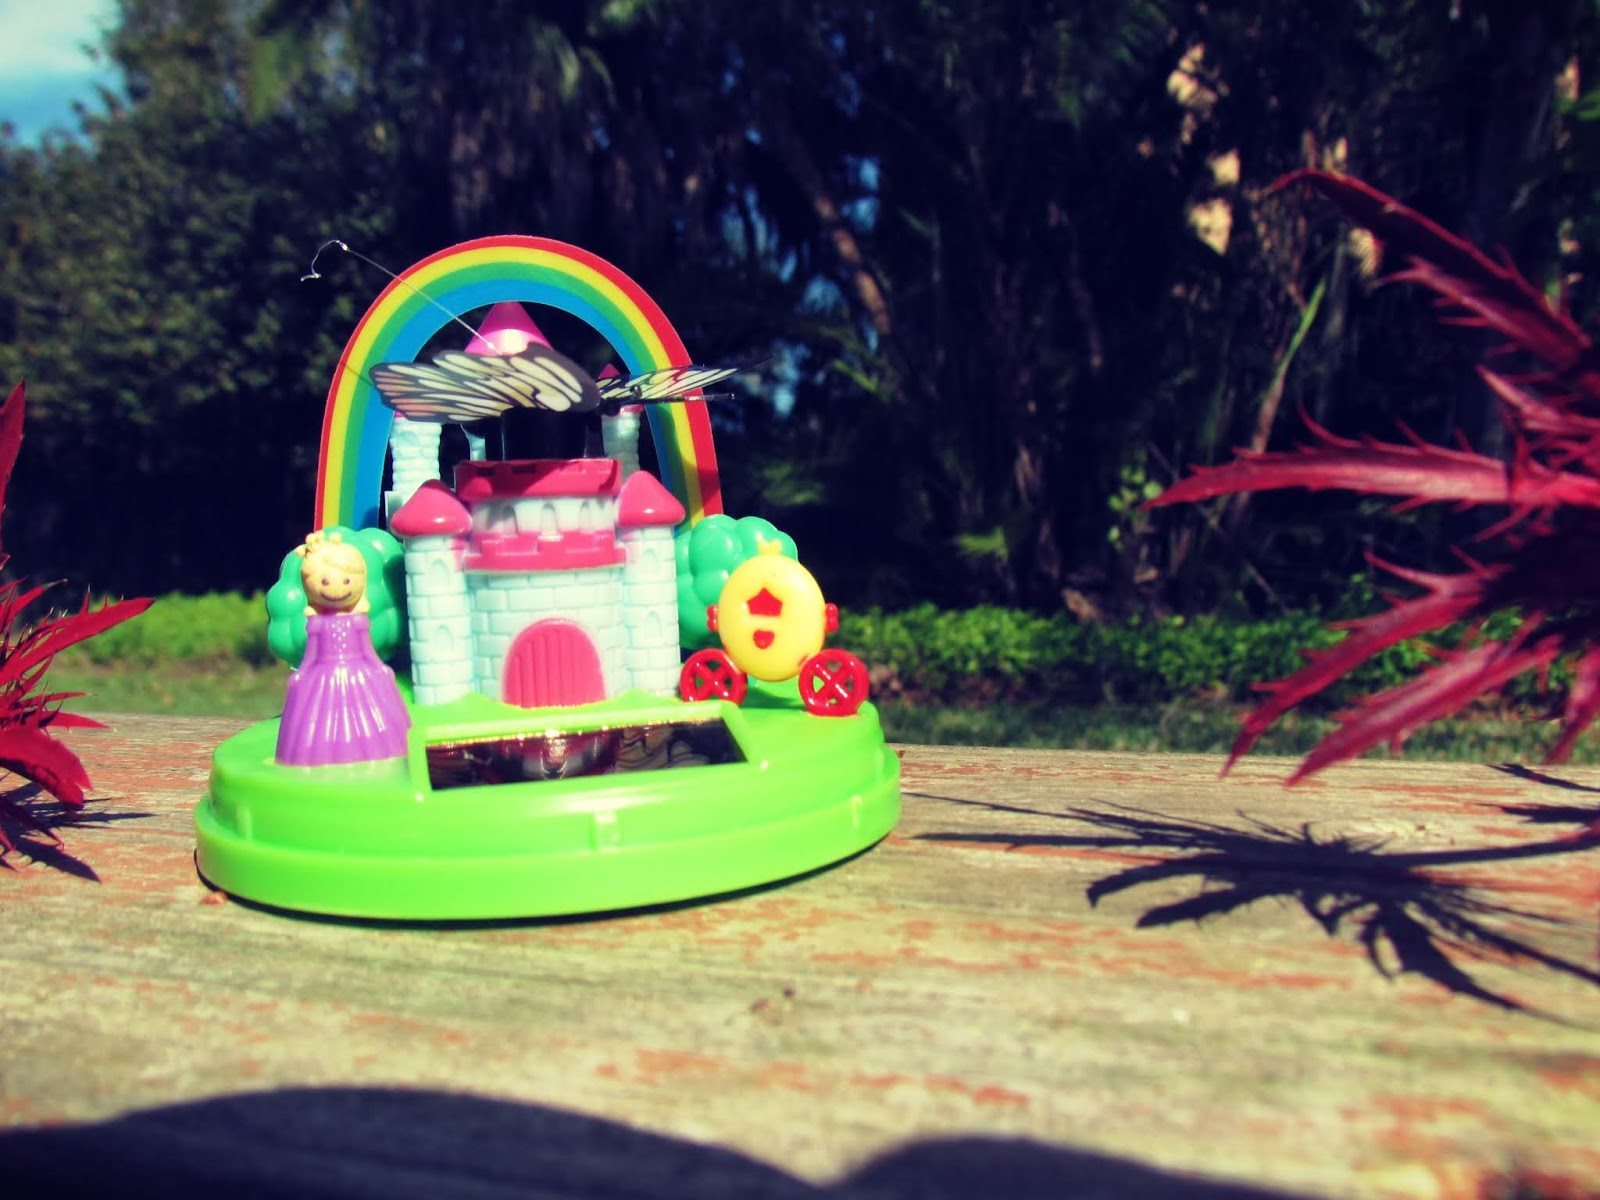 A magical fairy castle and princess diorama and microdome for the garden moves in sunlight in the backyard and wooden patio setting